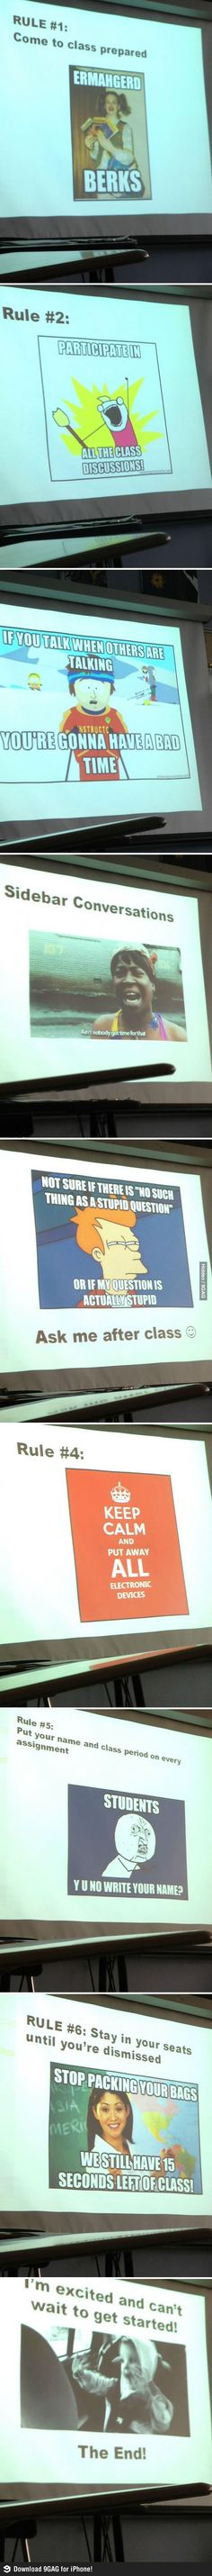 I want to have that professor!